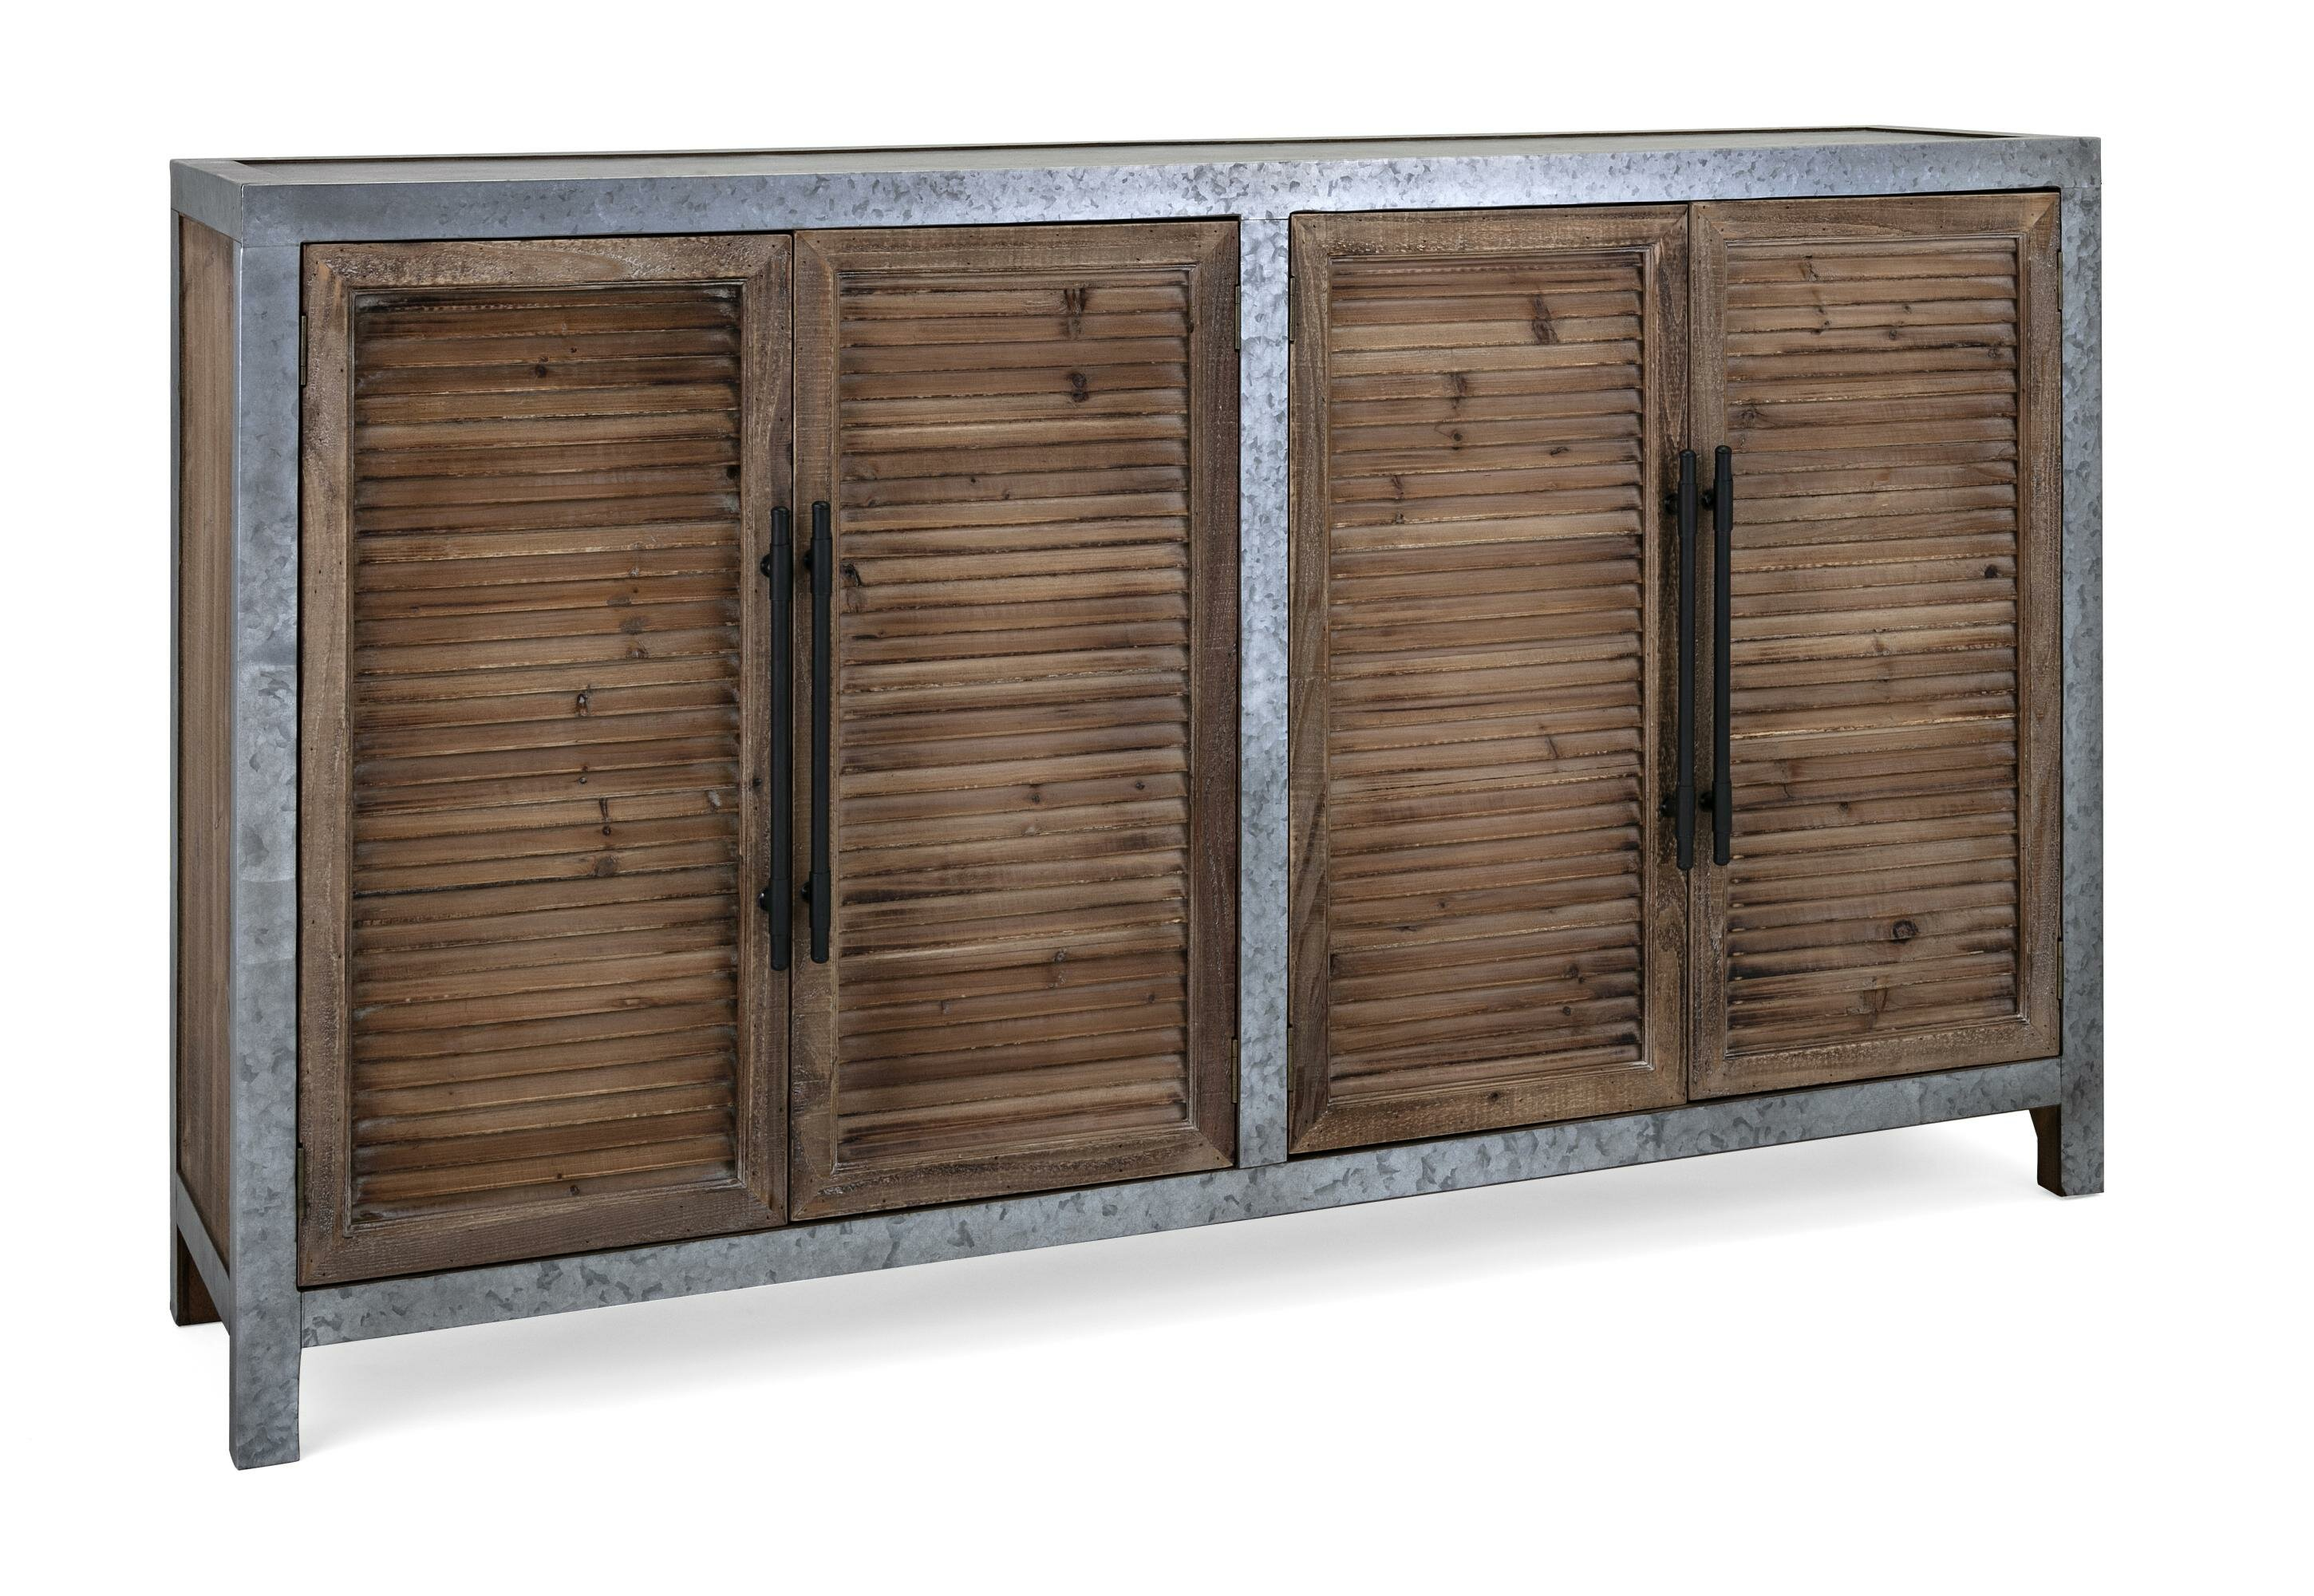 Super Varvara Wood And Metal Sideboard With Four Louvered Cabinet Doors Gray And Brown Download Free Architecture Designs Scobabritishbridgeorg